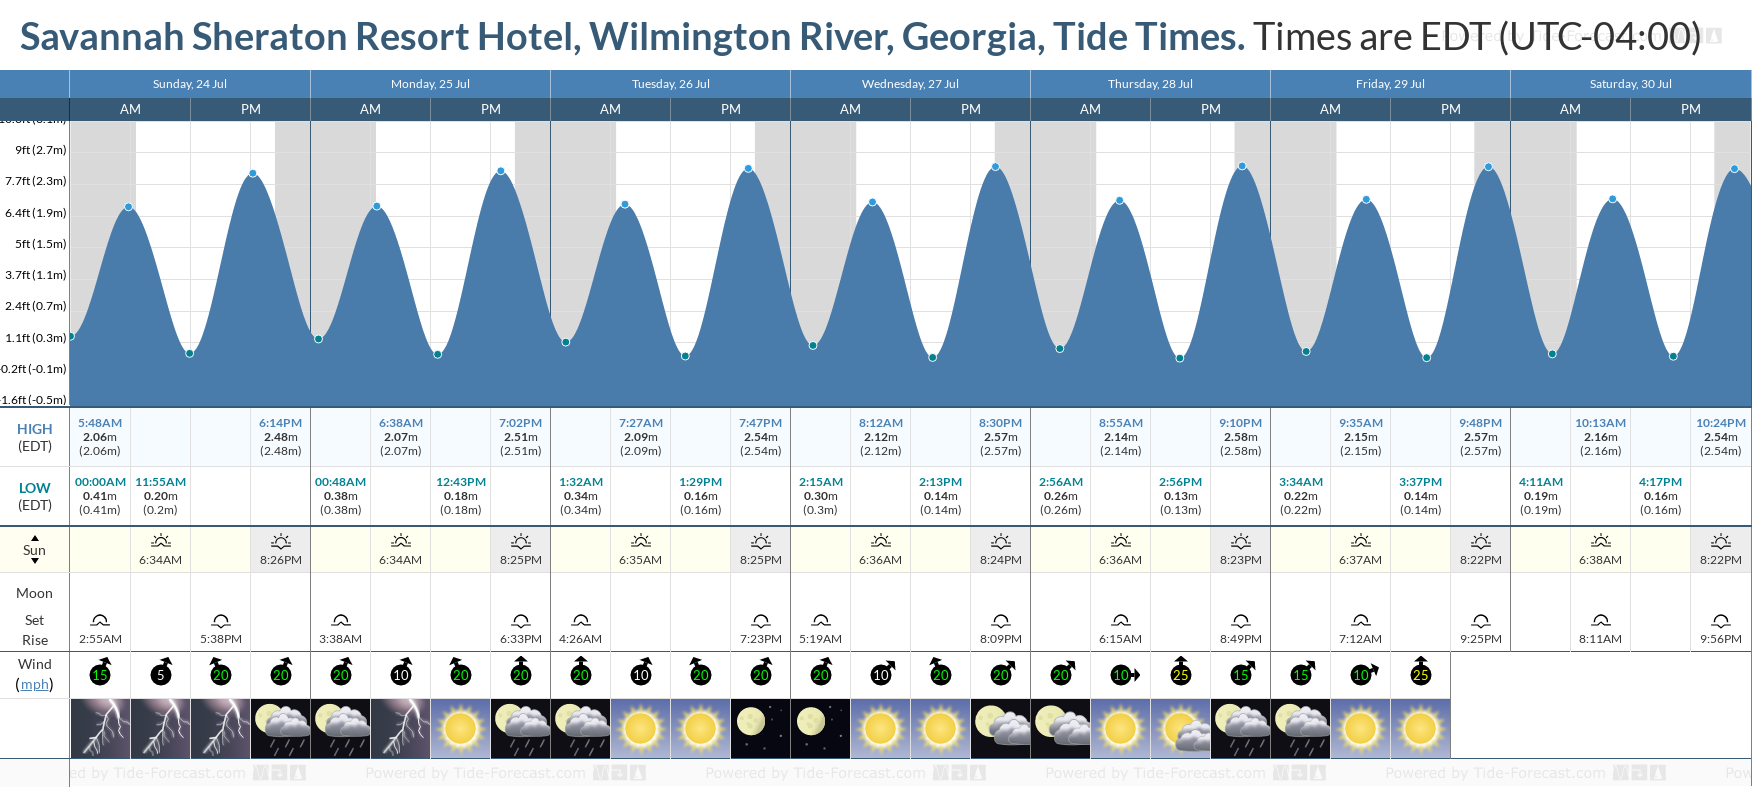 Savannah Sheraton Resort Hotel, Wilmington River, Georgia Tide Chart including high and low tide tide times for the next 7 days